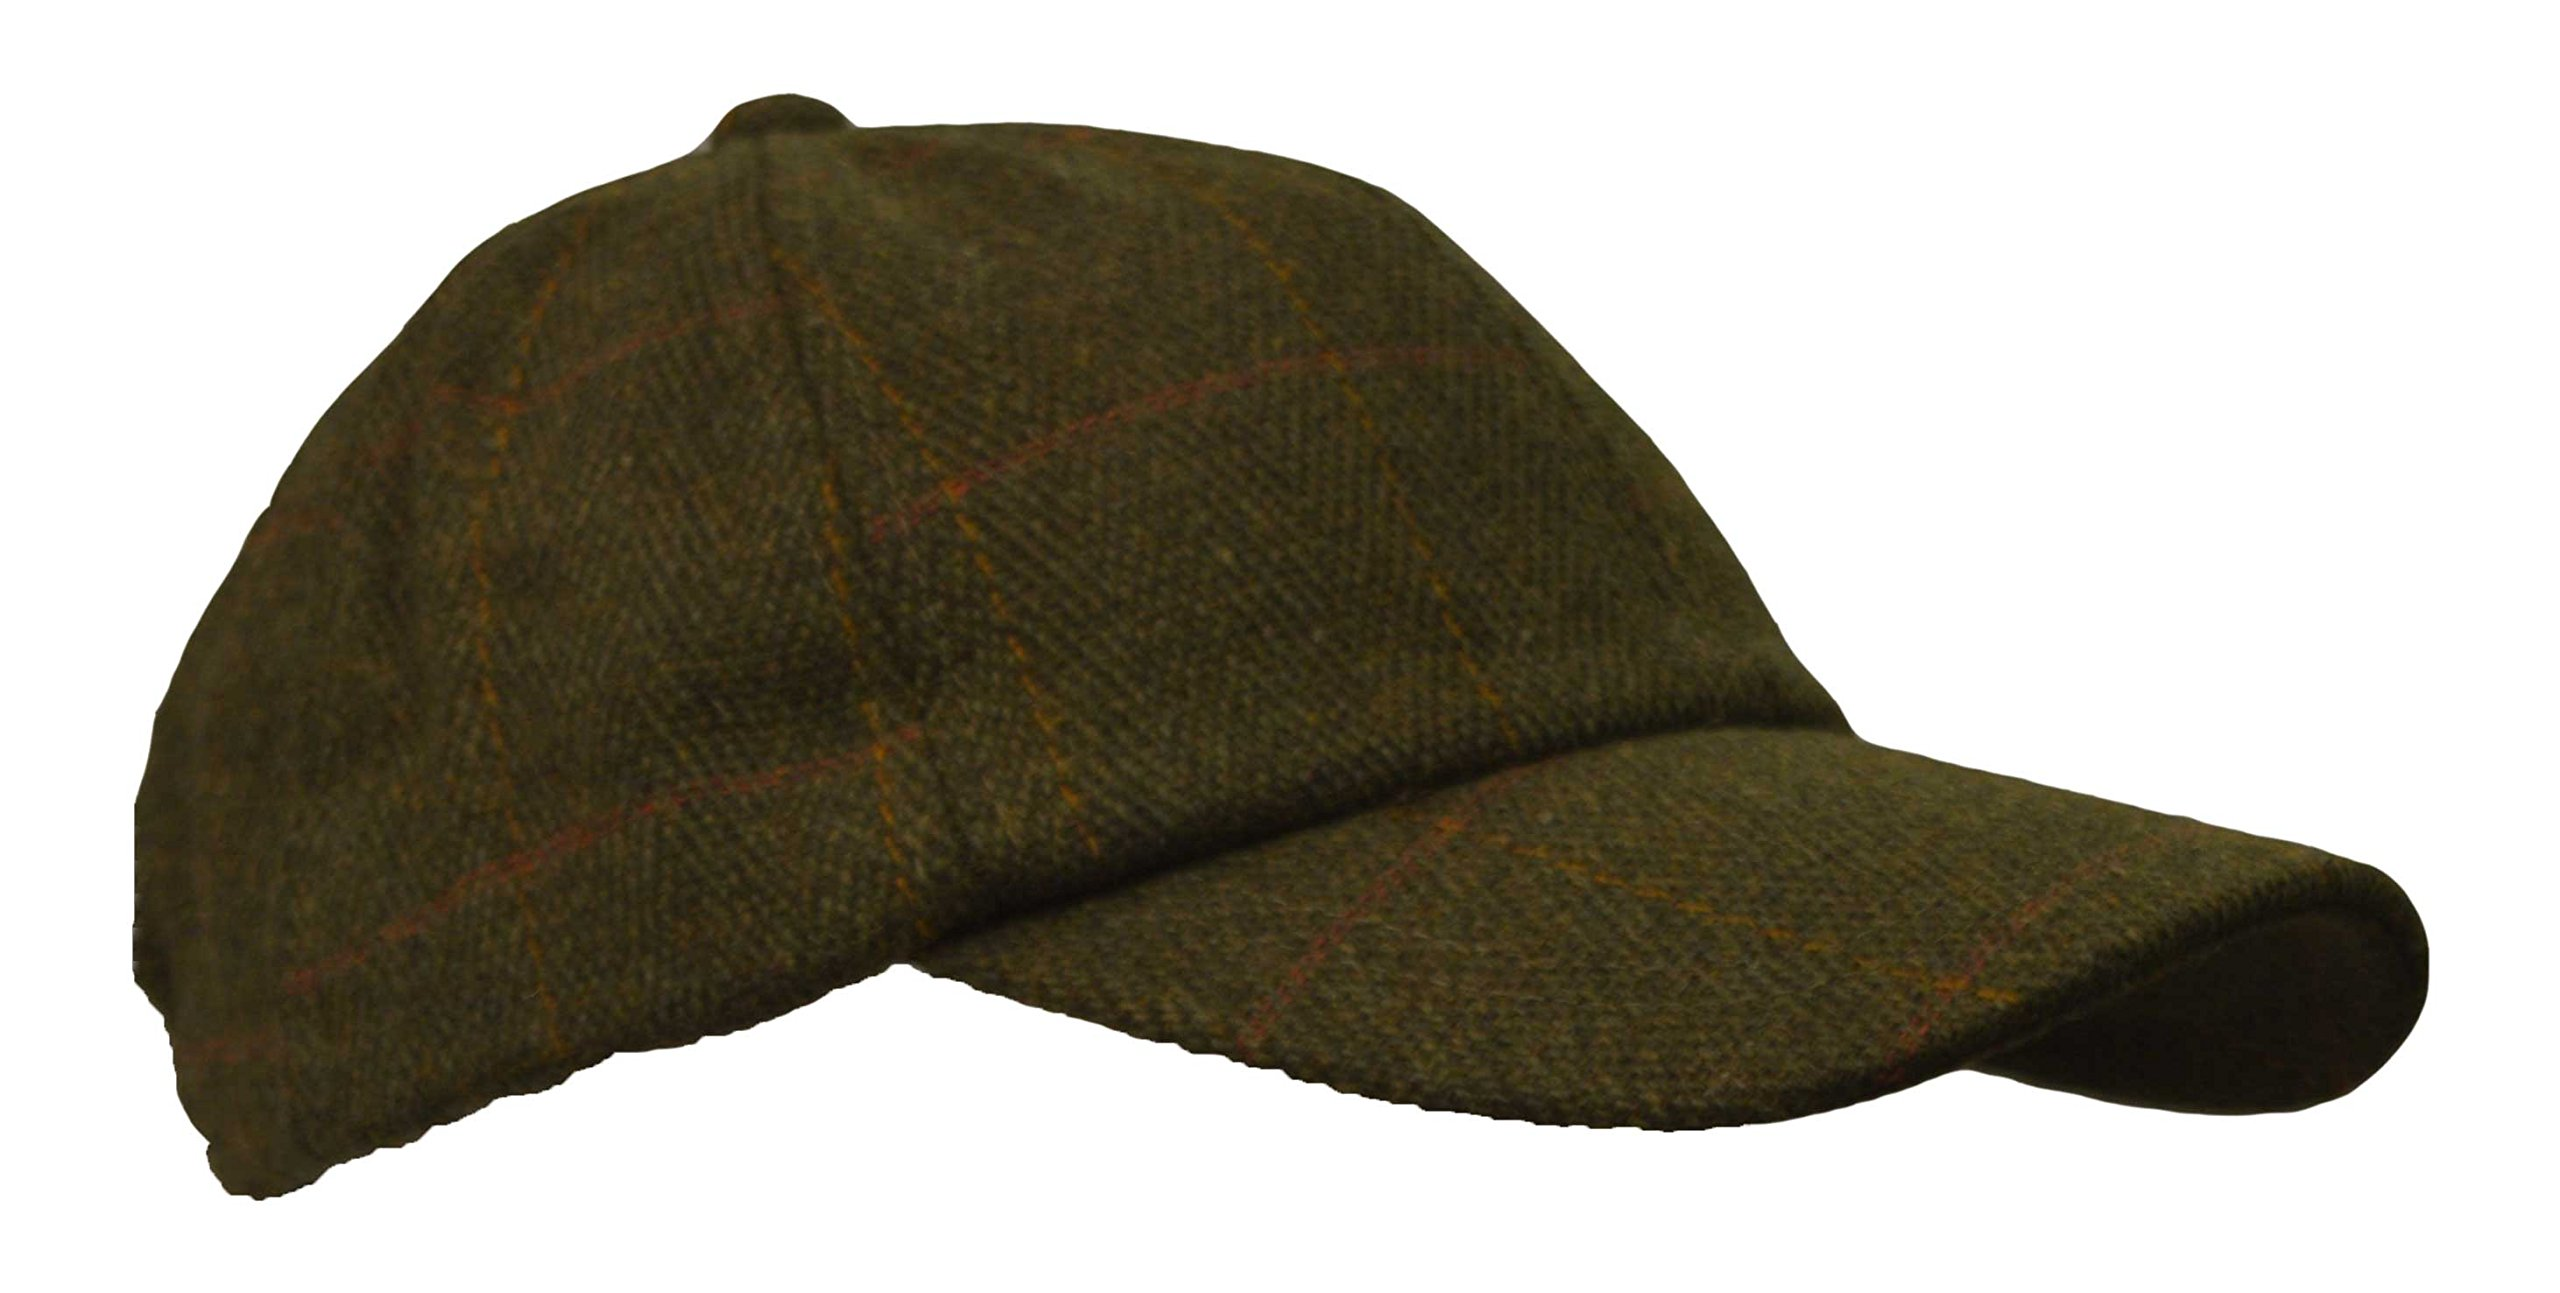 Walker and Hawkes Big Boys' Derby Tweed Baseball Cap Hunting Shooting Hat One Size Dark Sage by Walker and Hawkes